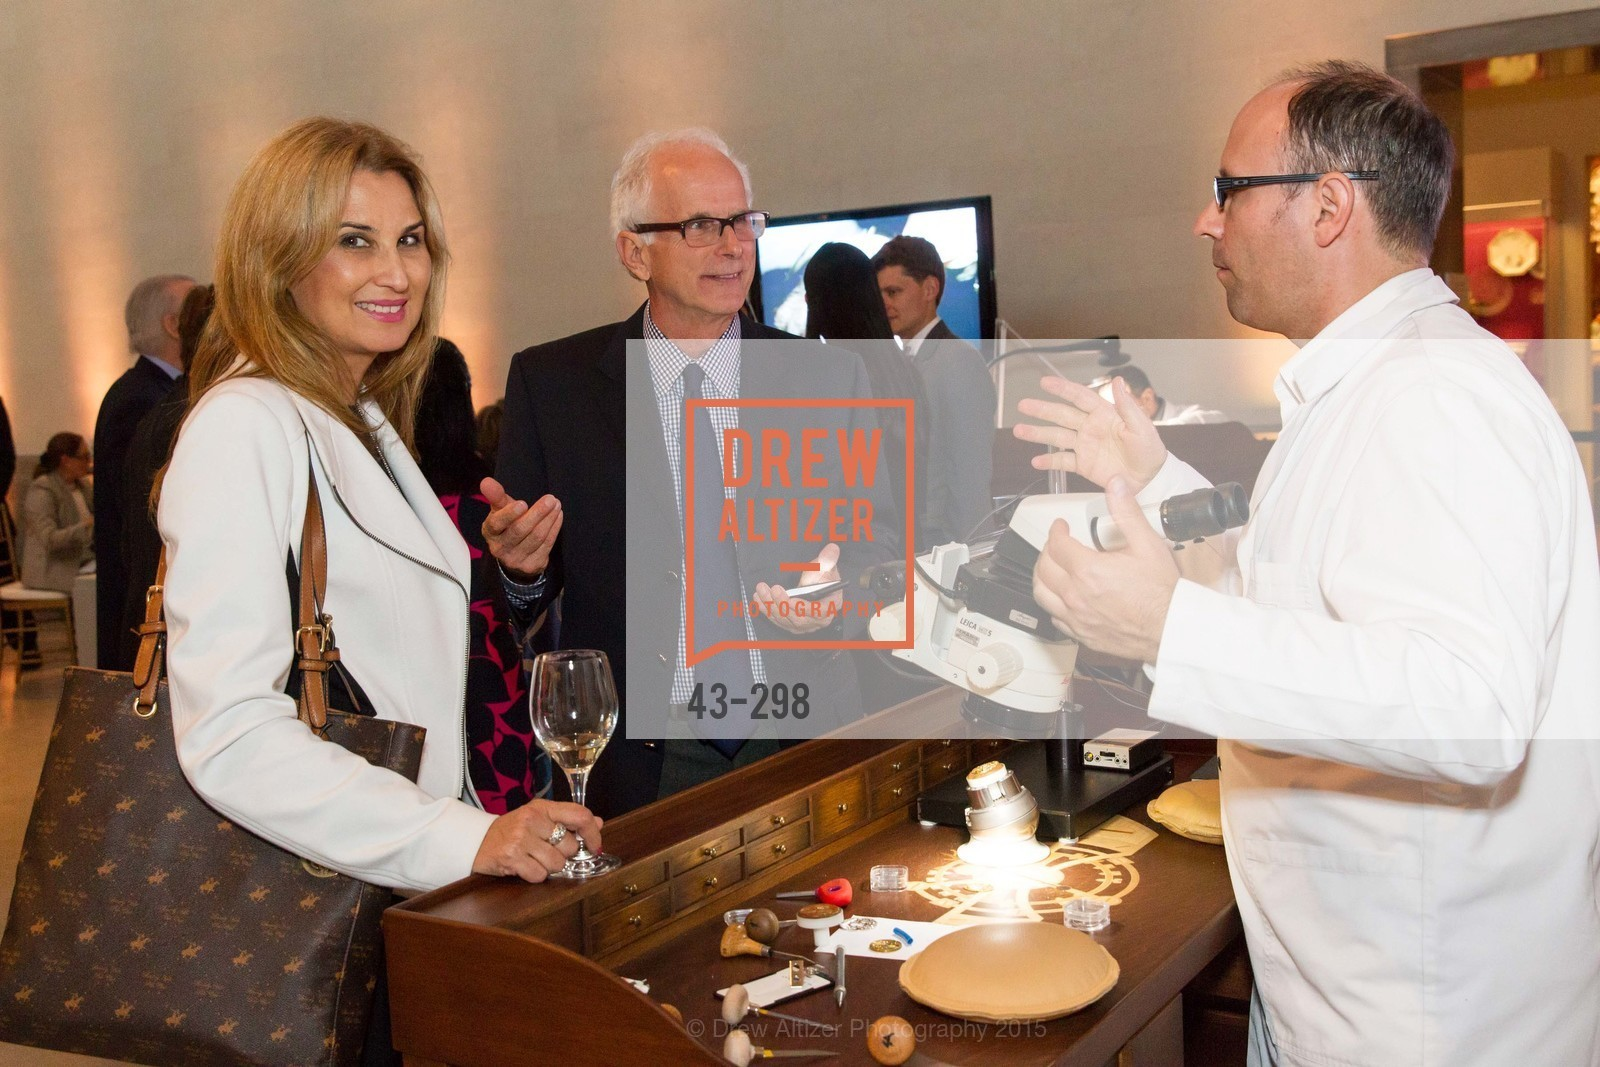 Sabina Steinberg, John Giffin, Breguet and Ancient Luxury Donor Opening Reception at Legion of Honor, Legion of Honor, September 17th, 2015,Drew Altizer, Drew Altizer Photography, full-service agency, private events, San Francisco photographer, photographer california